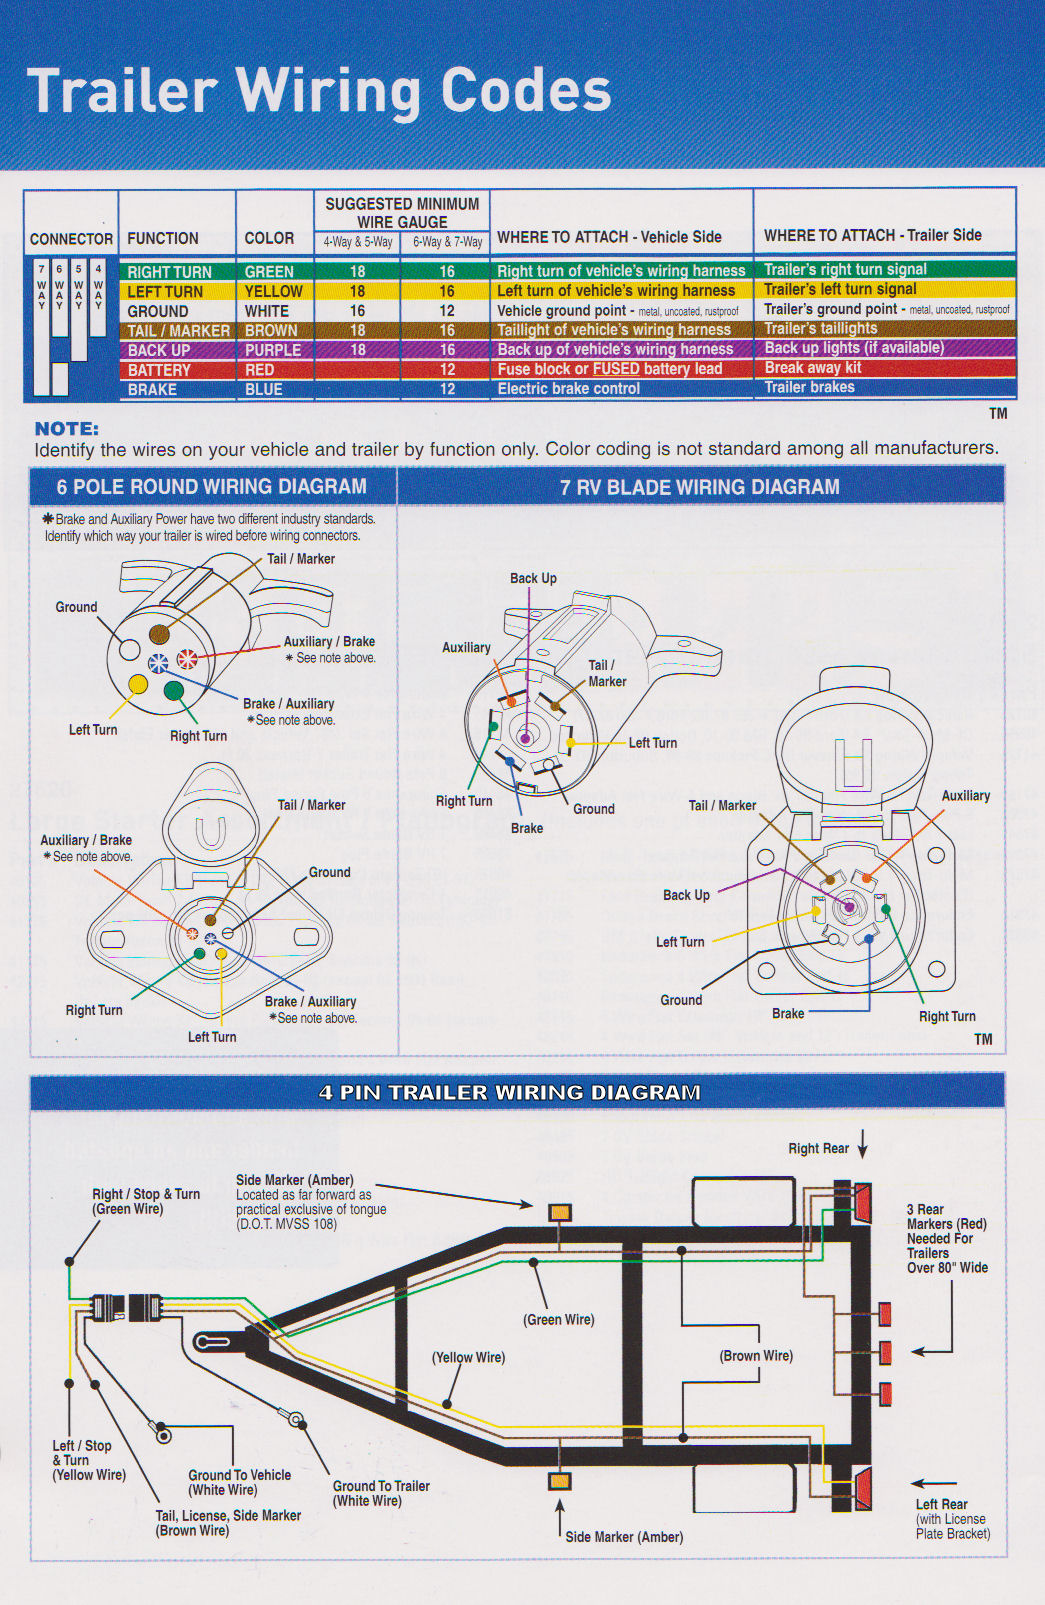 Trailer Wiring Diagram – Trailer Wiring Diagram Electric Brakes